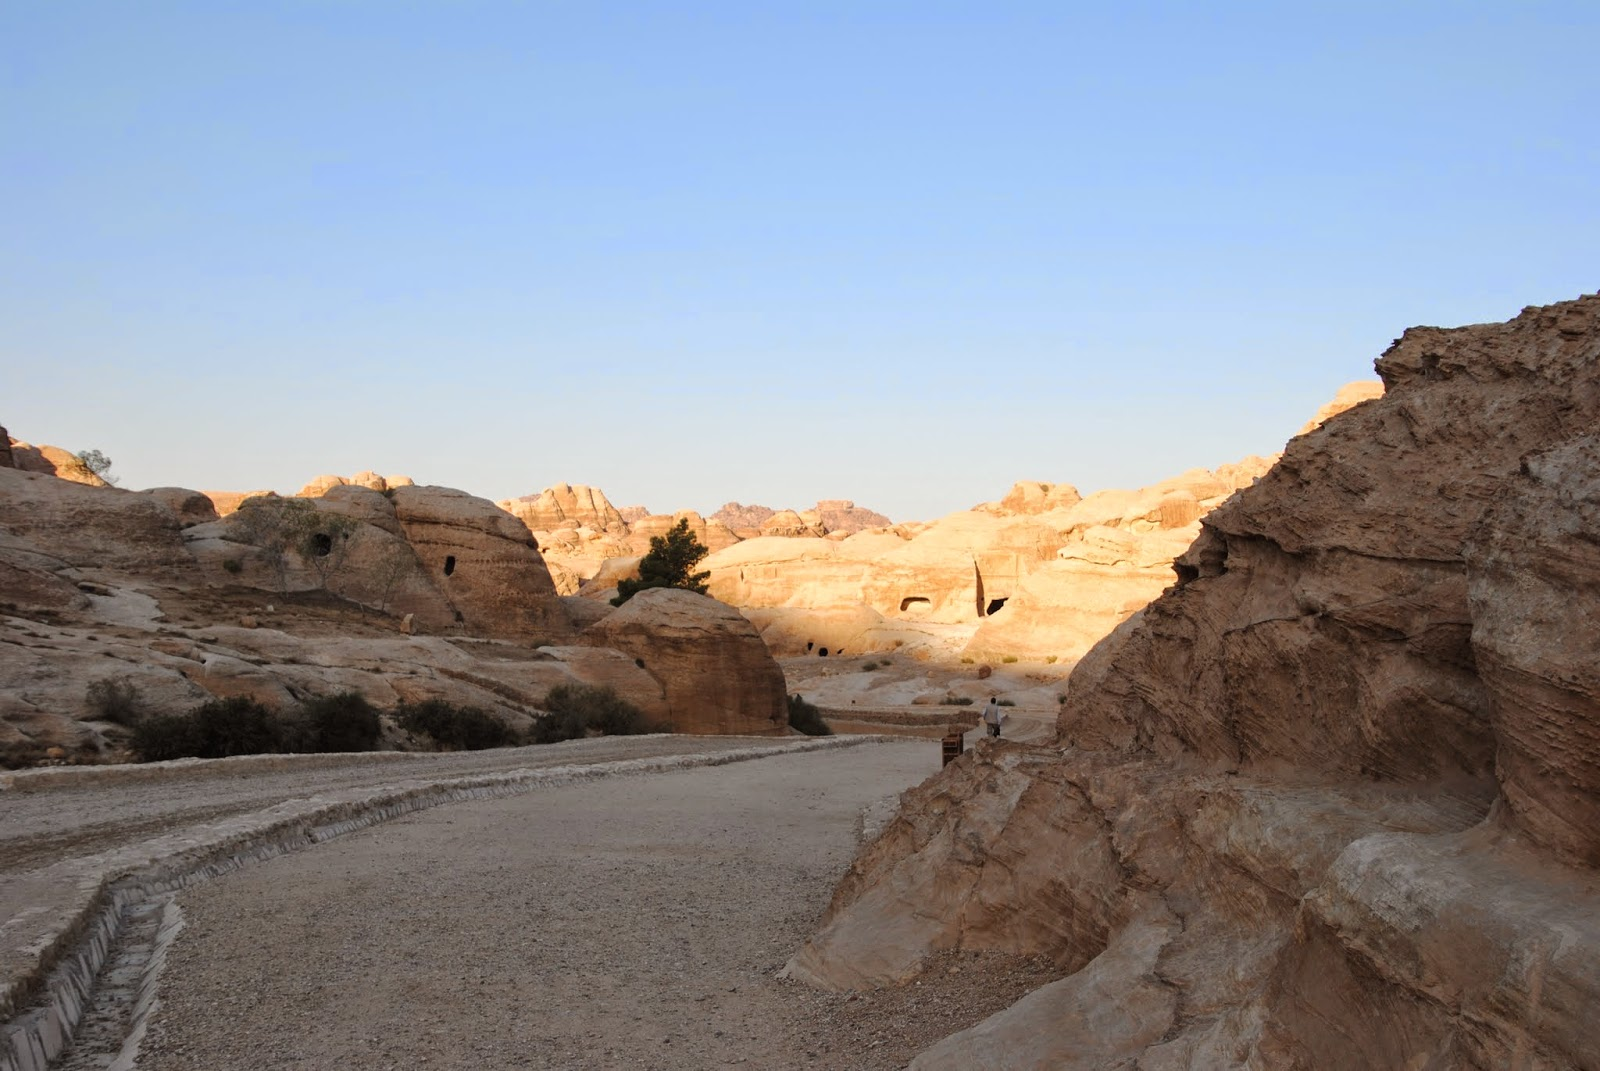 My Photos: Jordan -- Petra -- Entrance, Djin Blocks & Obelisk Tomb